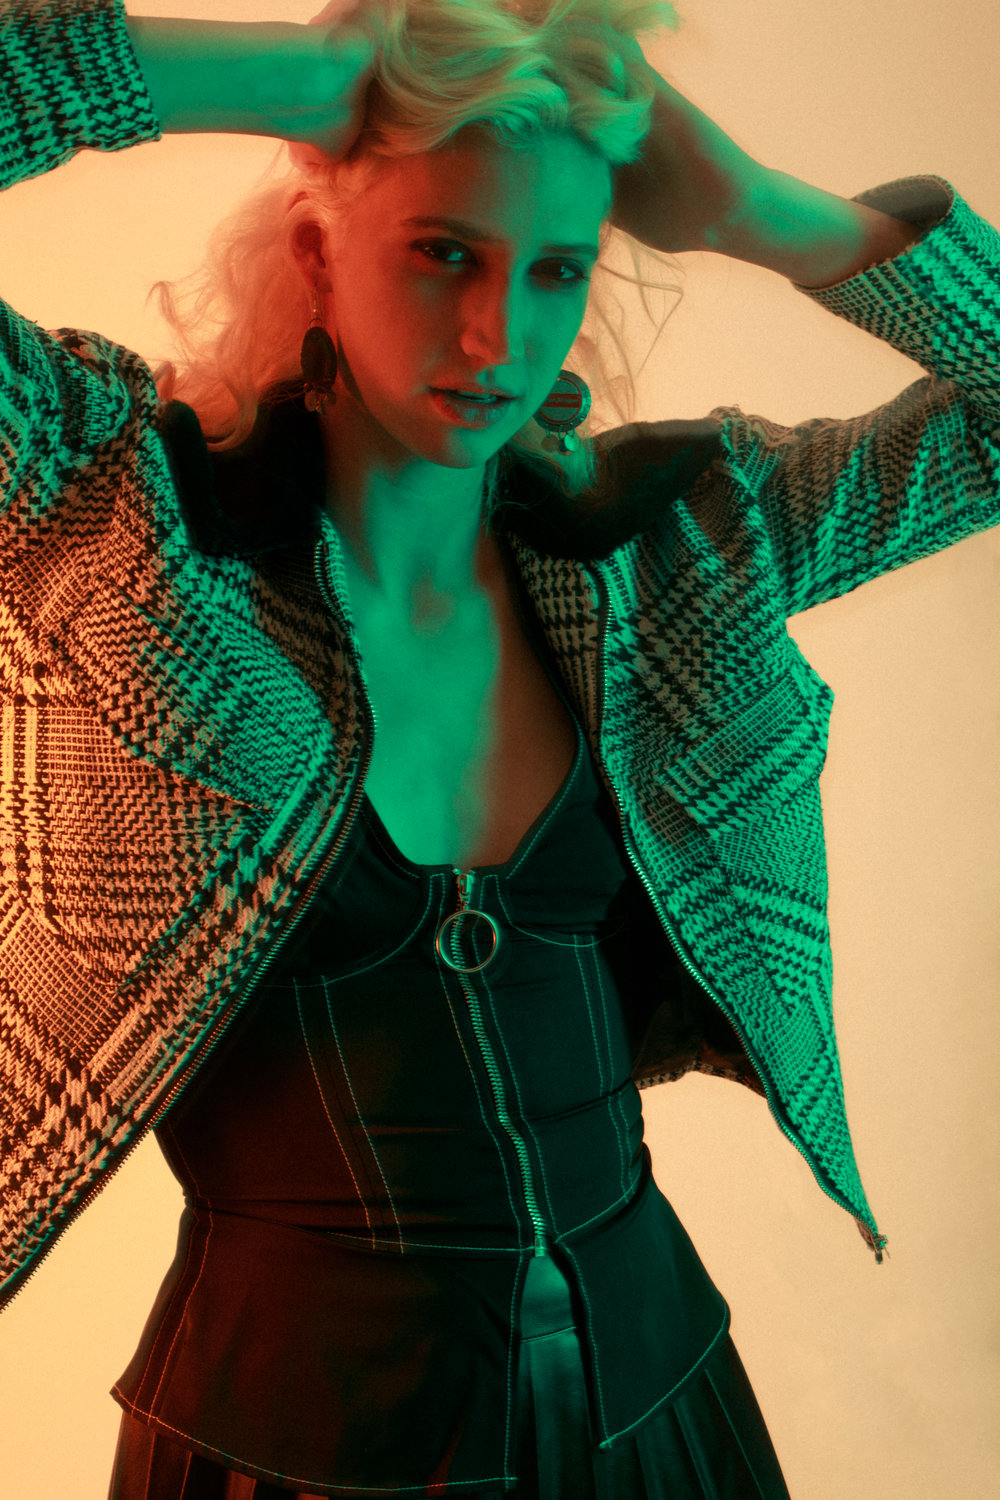 Eva Wagner photographed by  Merimon Hart , styled by Crystelle Colucci,make up by Duran Tsang and hair by Nico Gianfortune